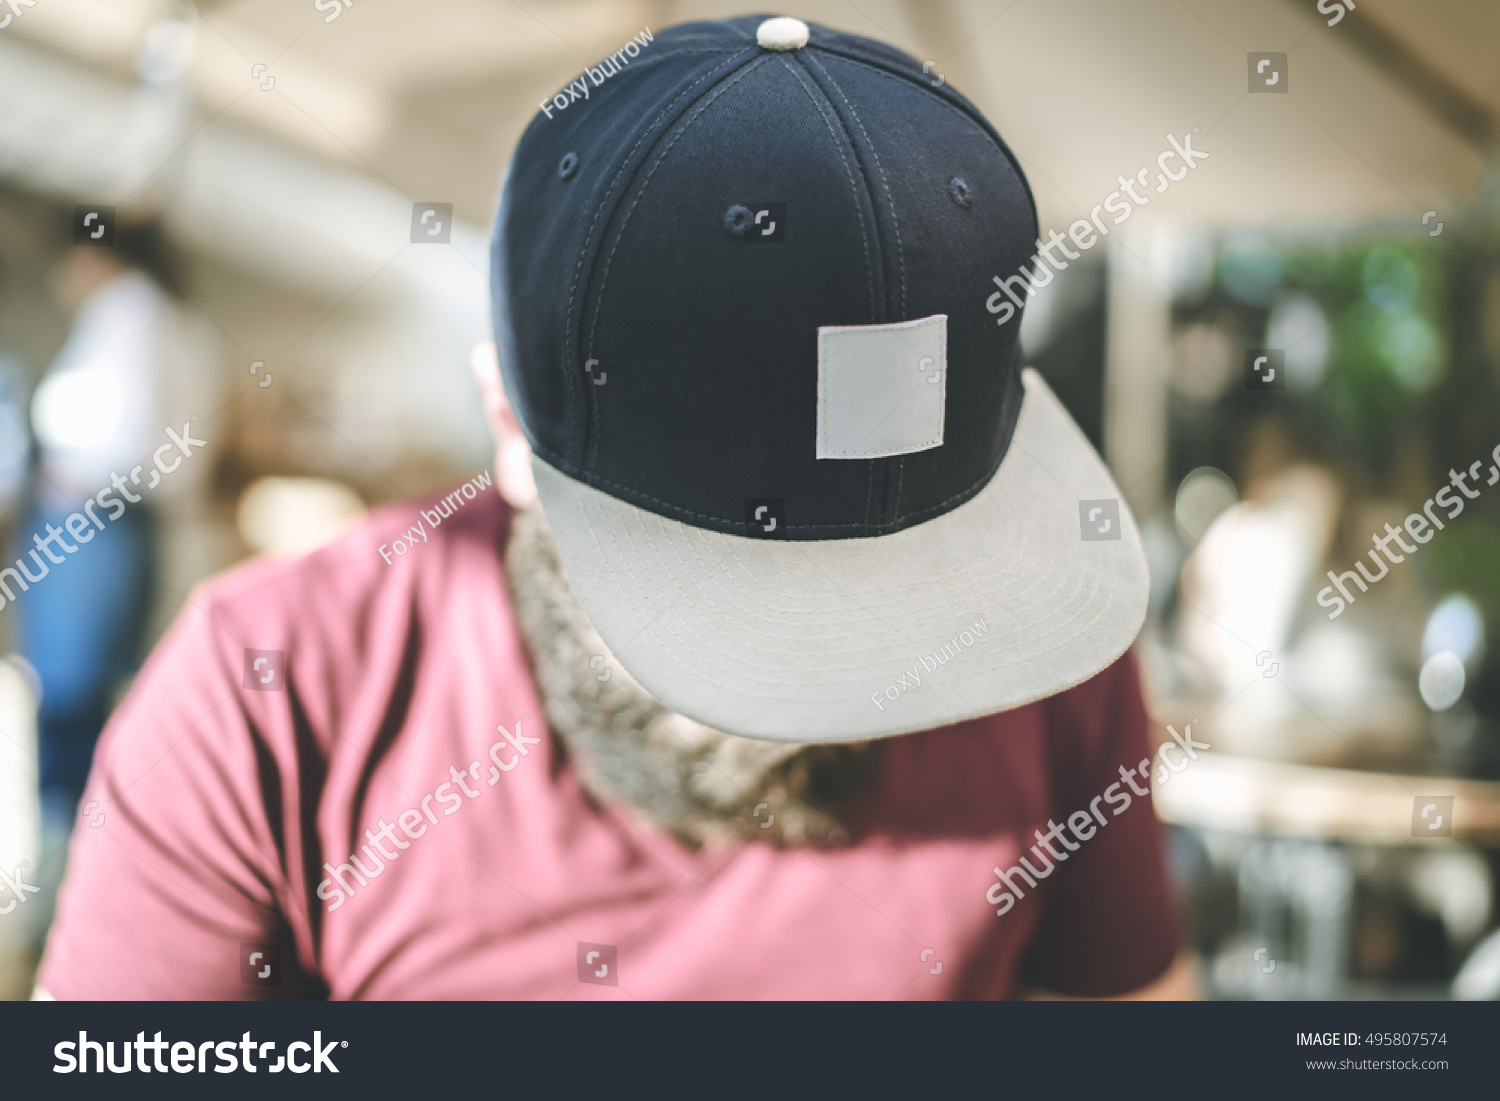 Closeup Of A Baseball Cap On The Mans Head Face Hidden Visor